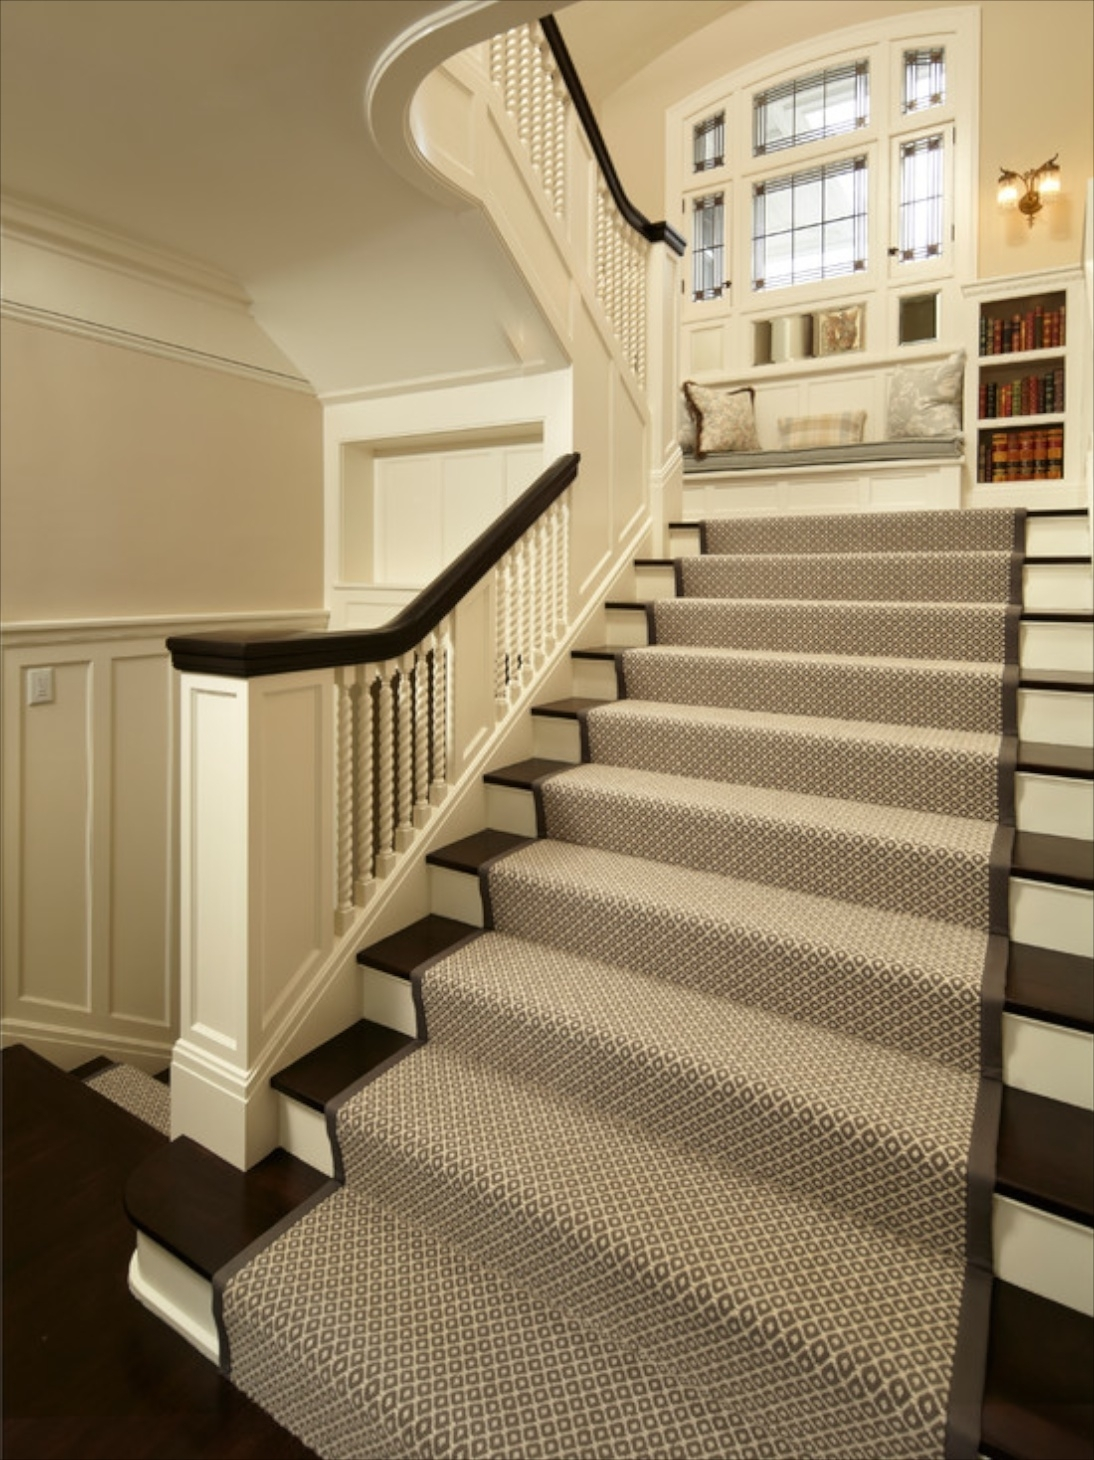 20 Best Collection Of Removable Carpet Stair Treads   Carpet Strips For Stairs